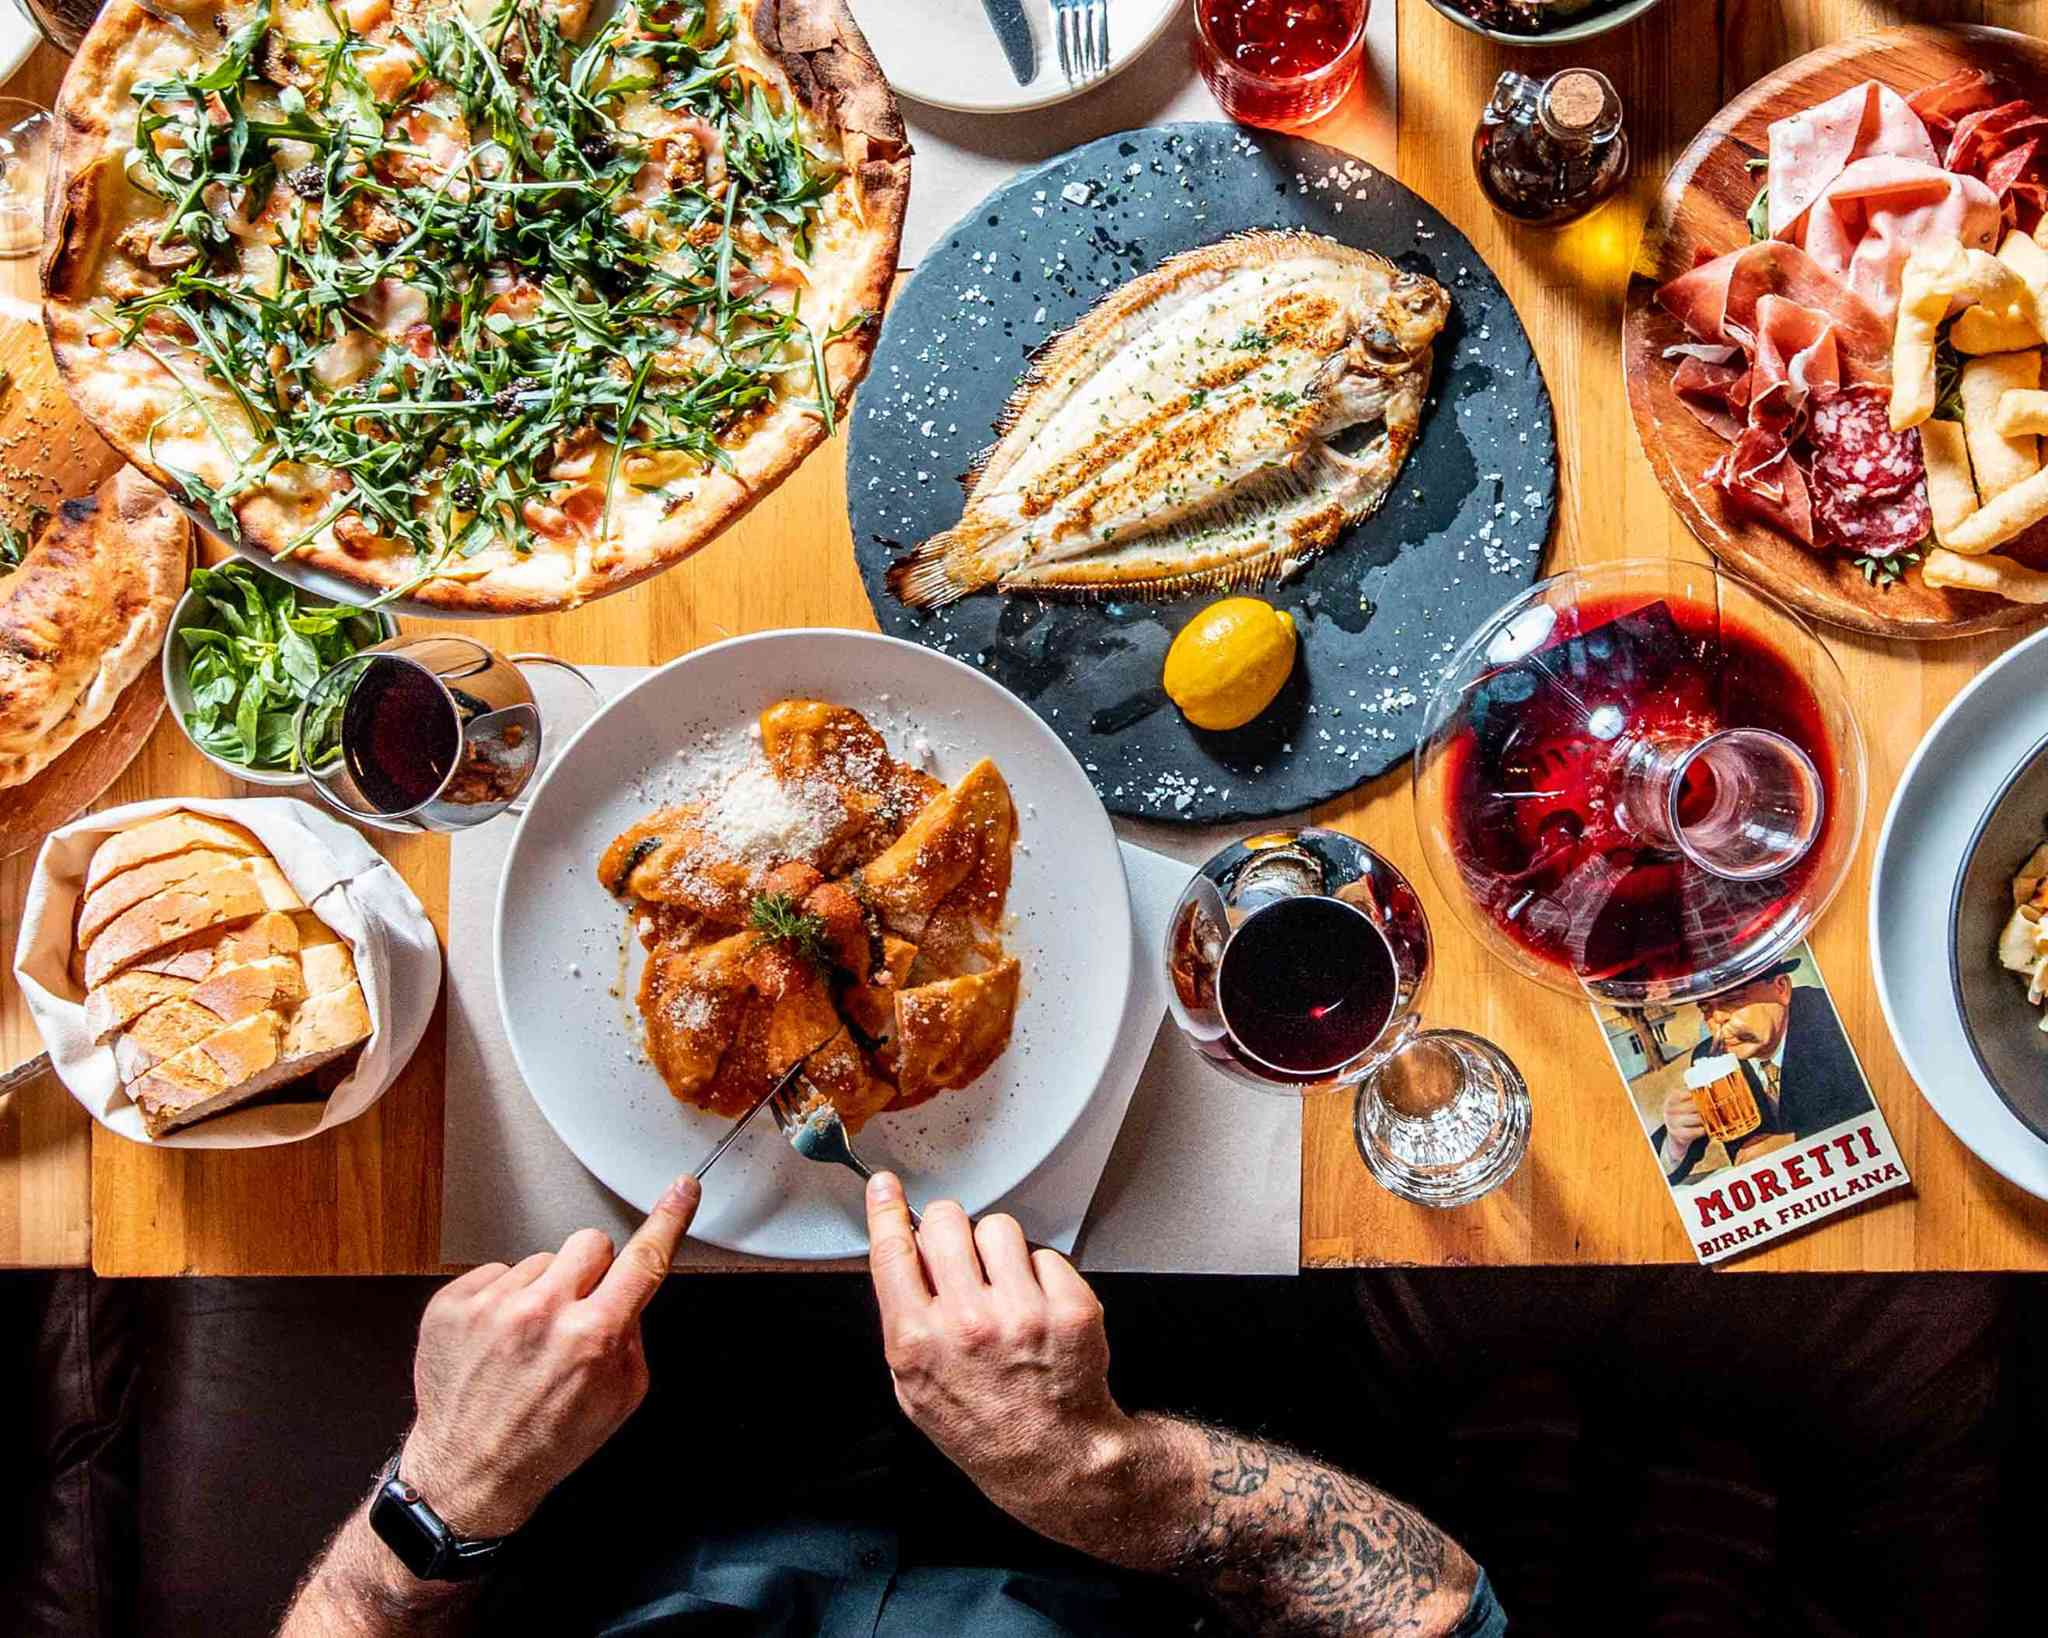 A table filled with Italian dishes